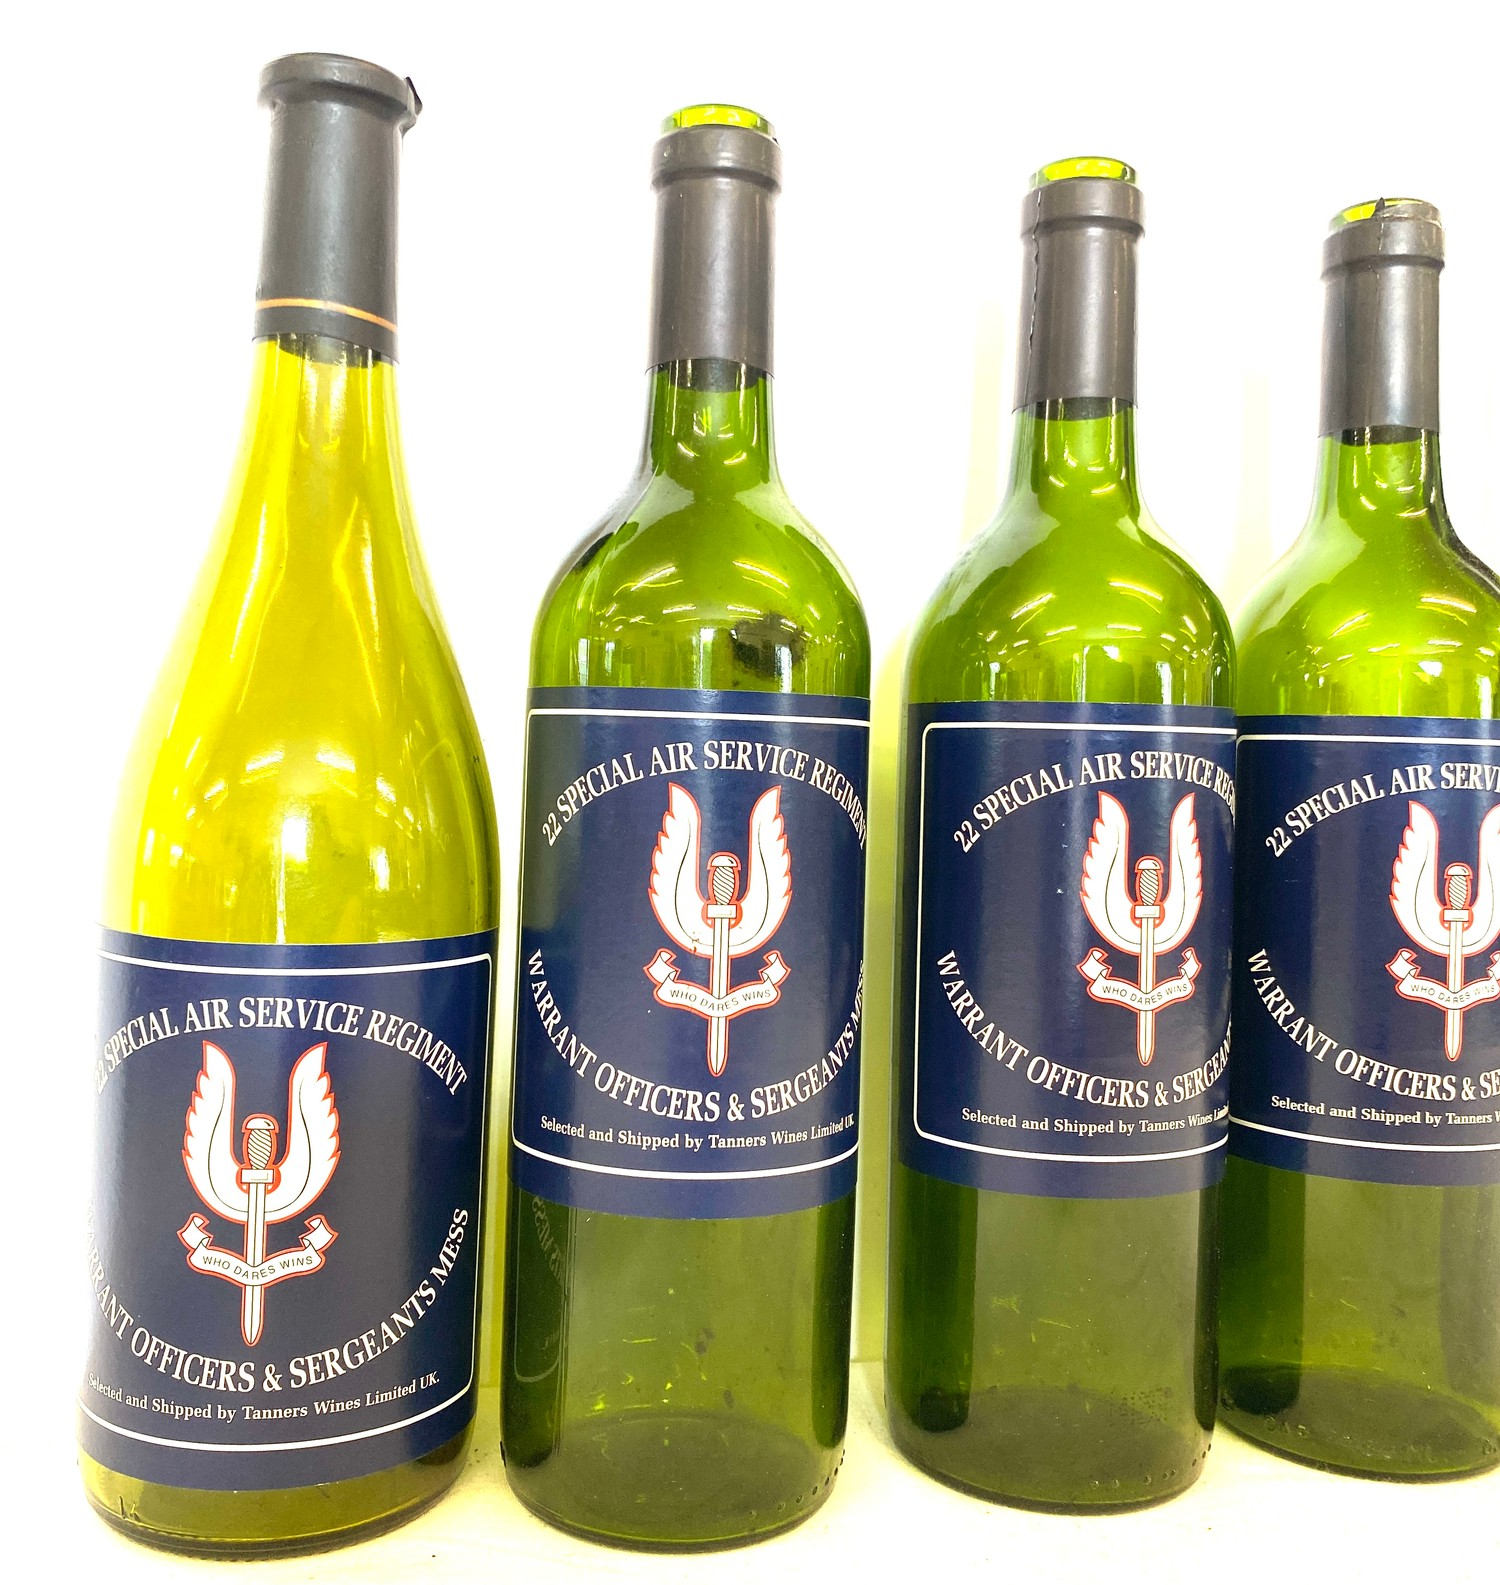 """Box of 13 """"22 Special Service Regiment"""" wine bottles - empty - Image 3 of 3"""